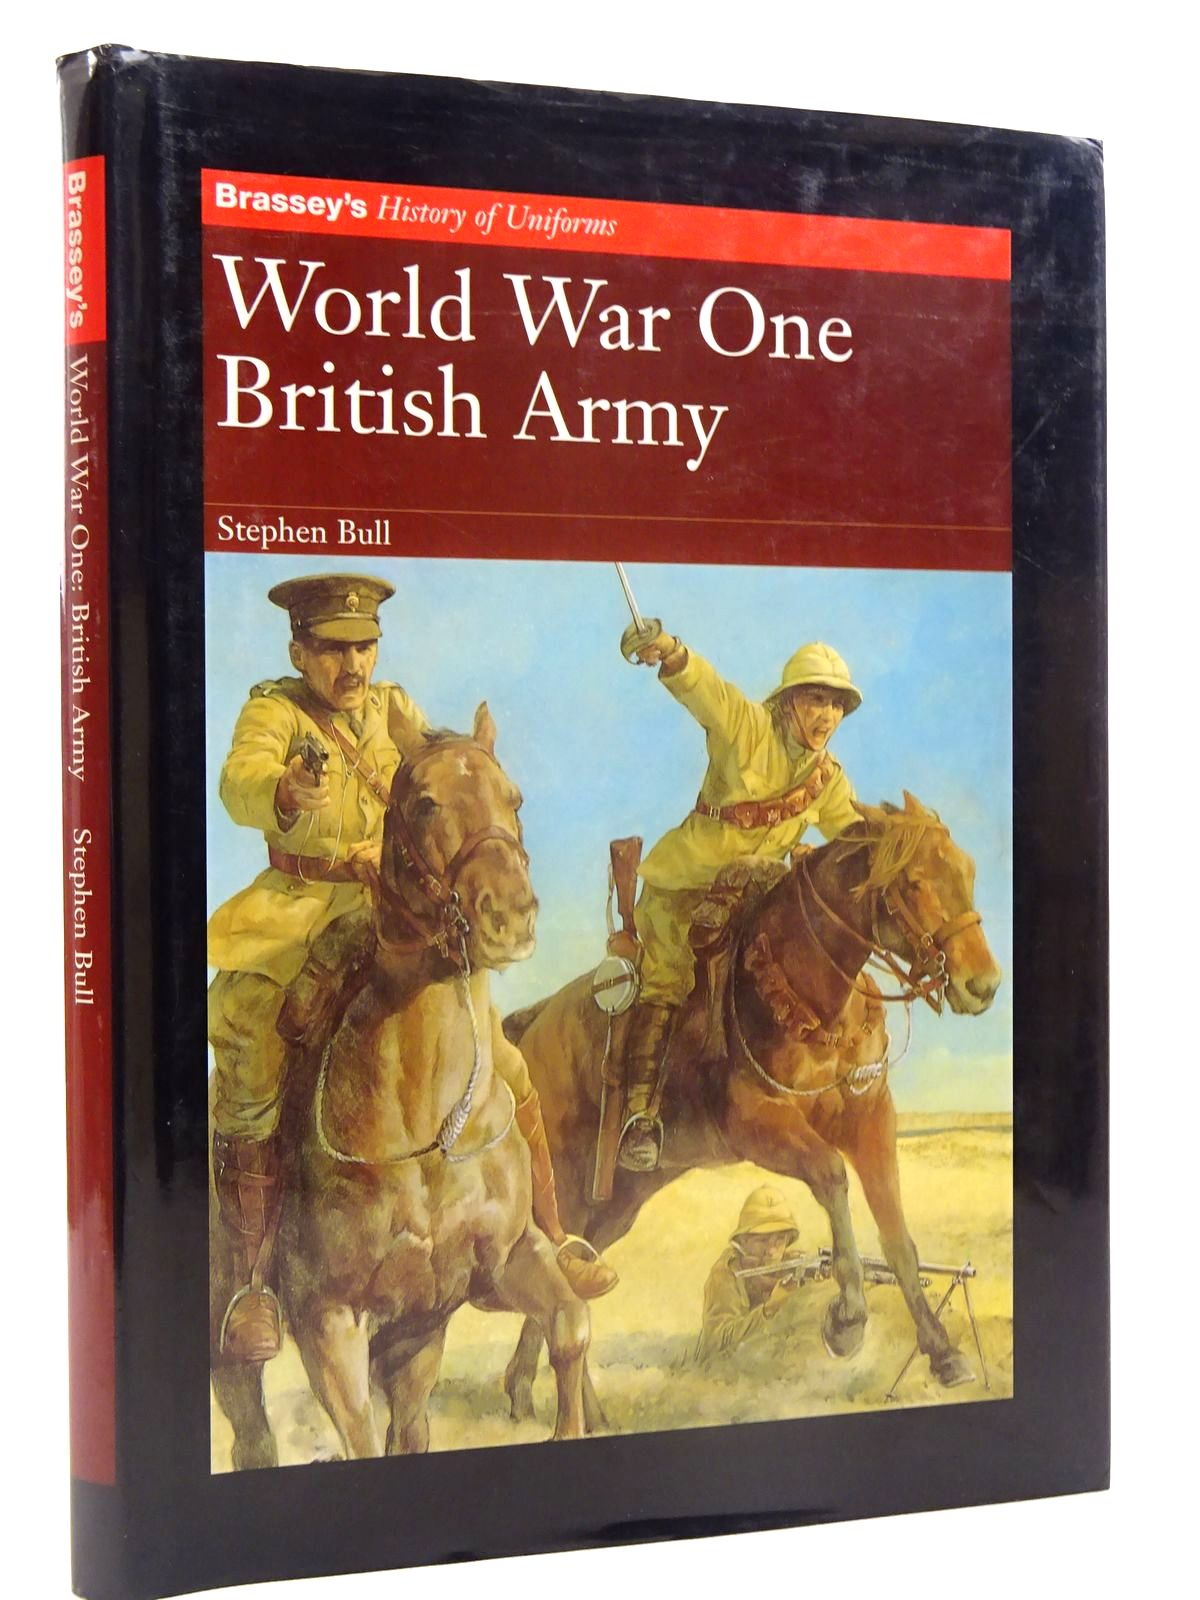 Photo of WORLD WAR ONE BRITISH ARMY written by Bull, Stephen illustrated by Hook, Christa published by Brassey's (STOCK CODE: 2125747)  for sale by Stella & Rose's Books